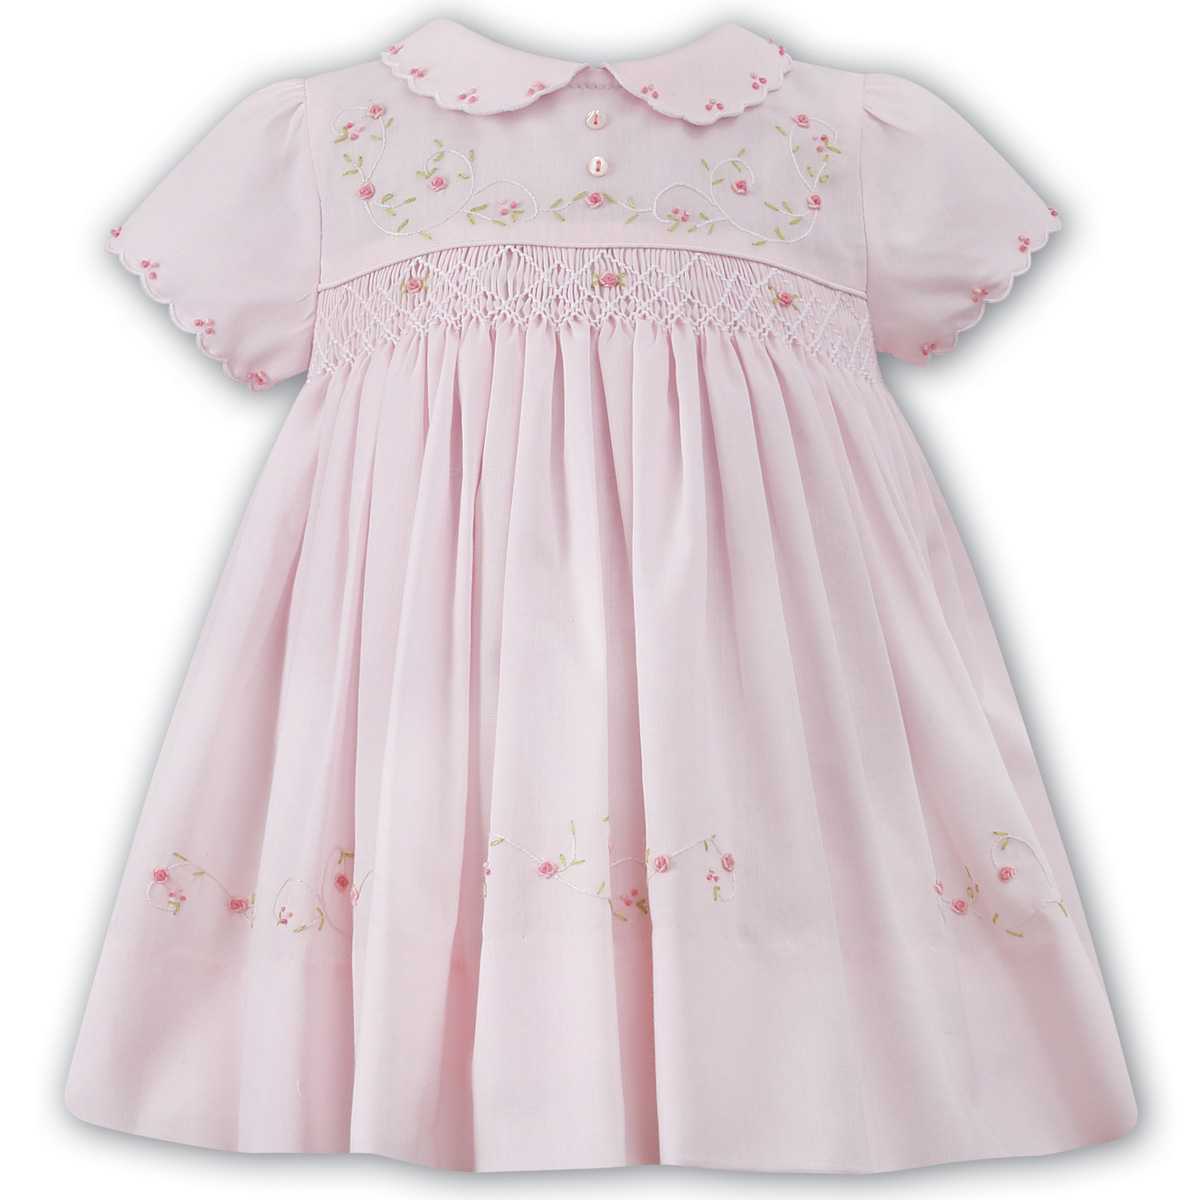 Sarah Louise Baby Pink Smocked Dress With Embroideries ...